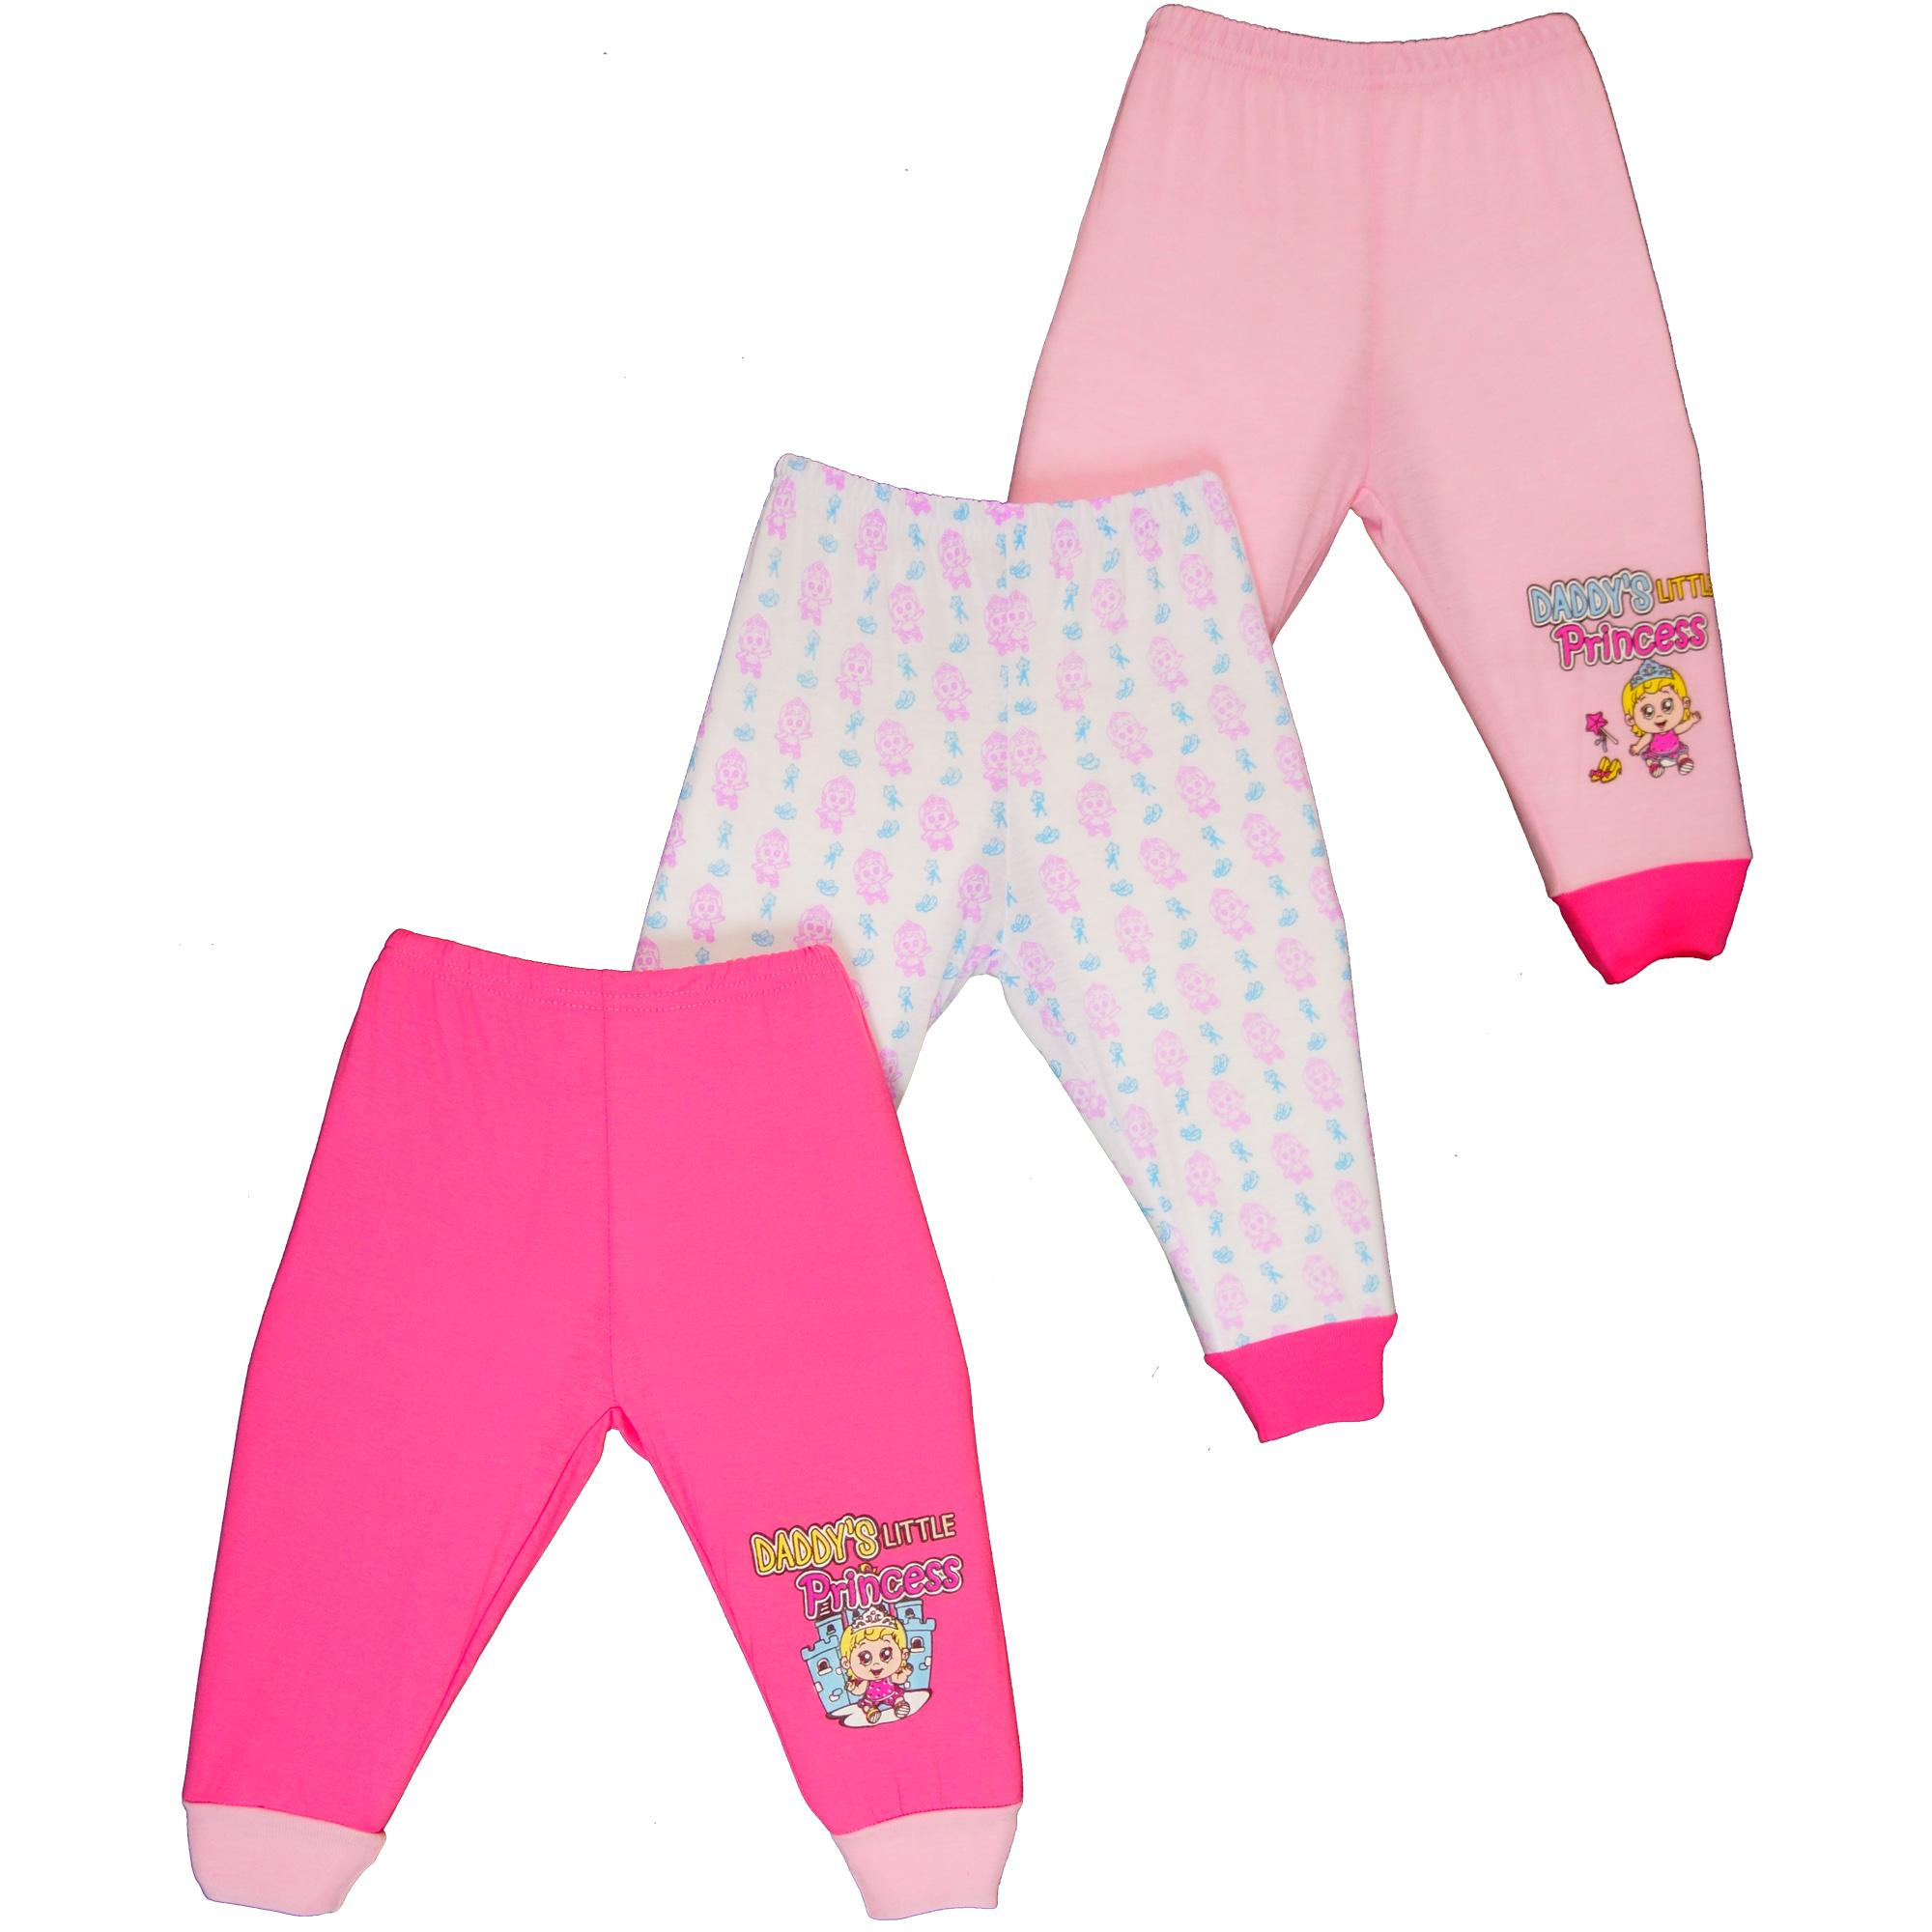 3c0b379b5 Bottom Clothes for Girls for sale - Baby Girls Bottoms online brands ...